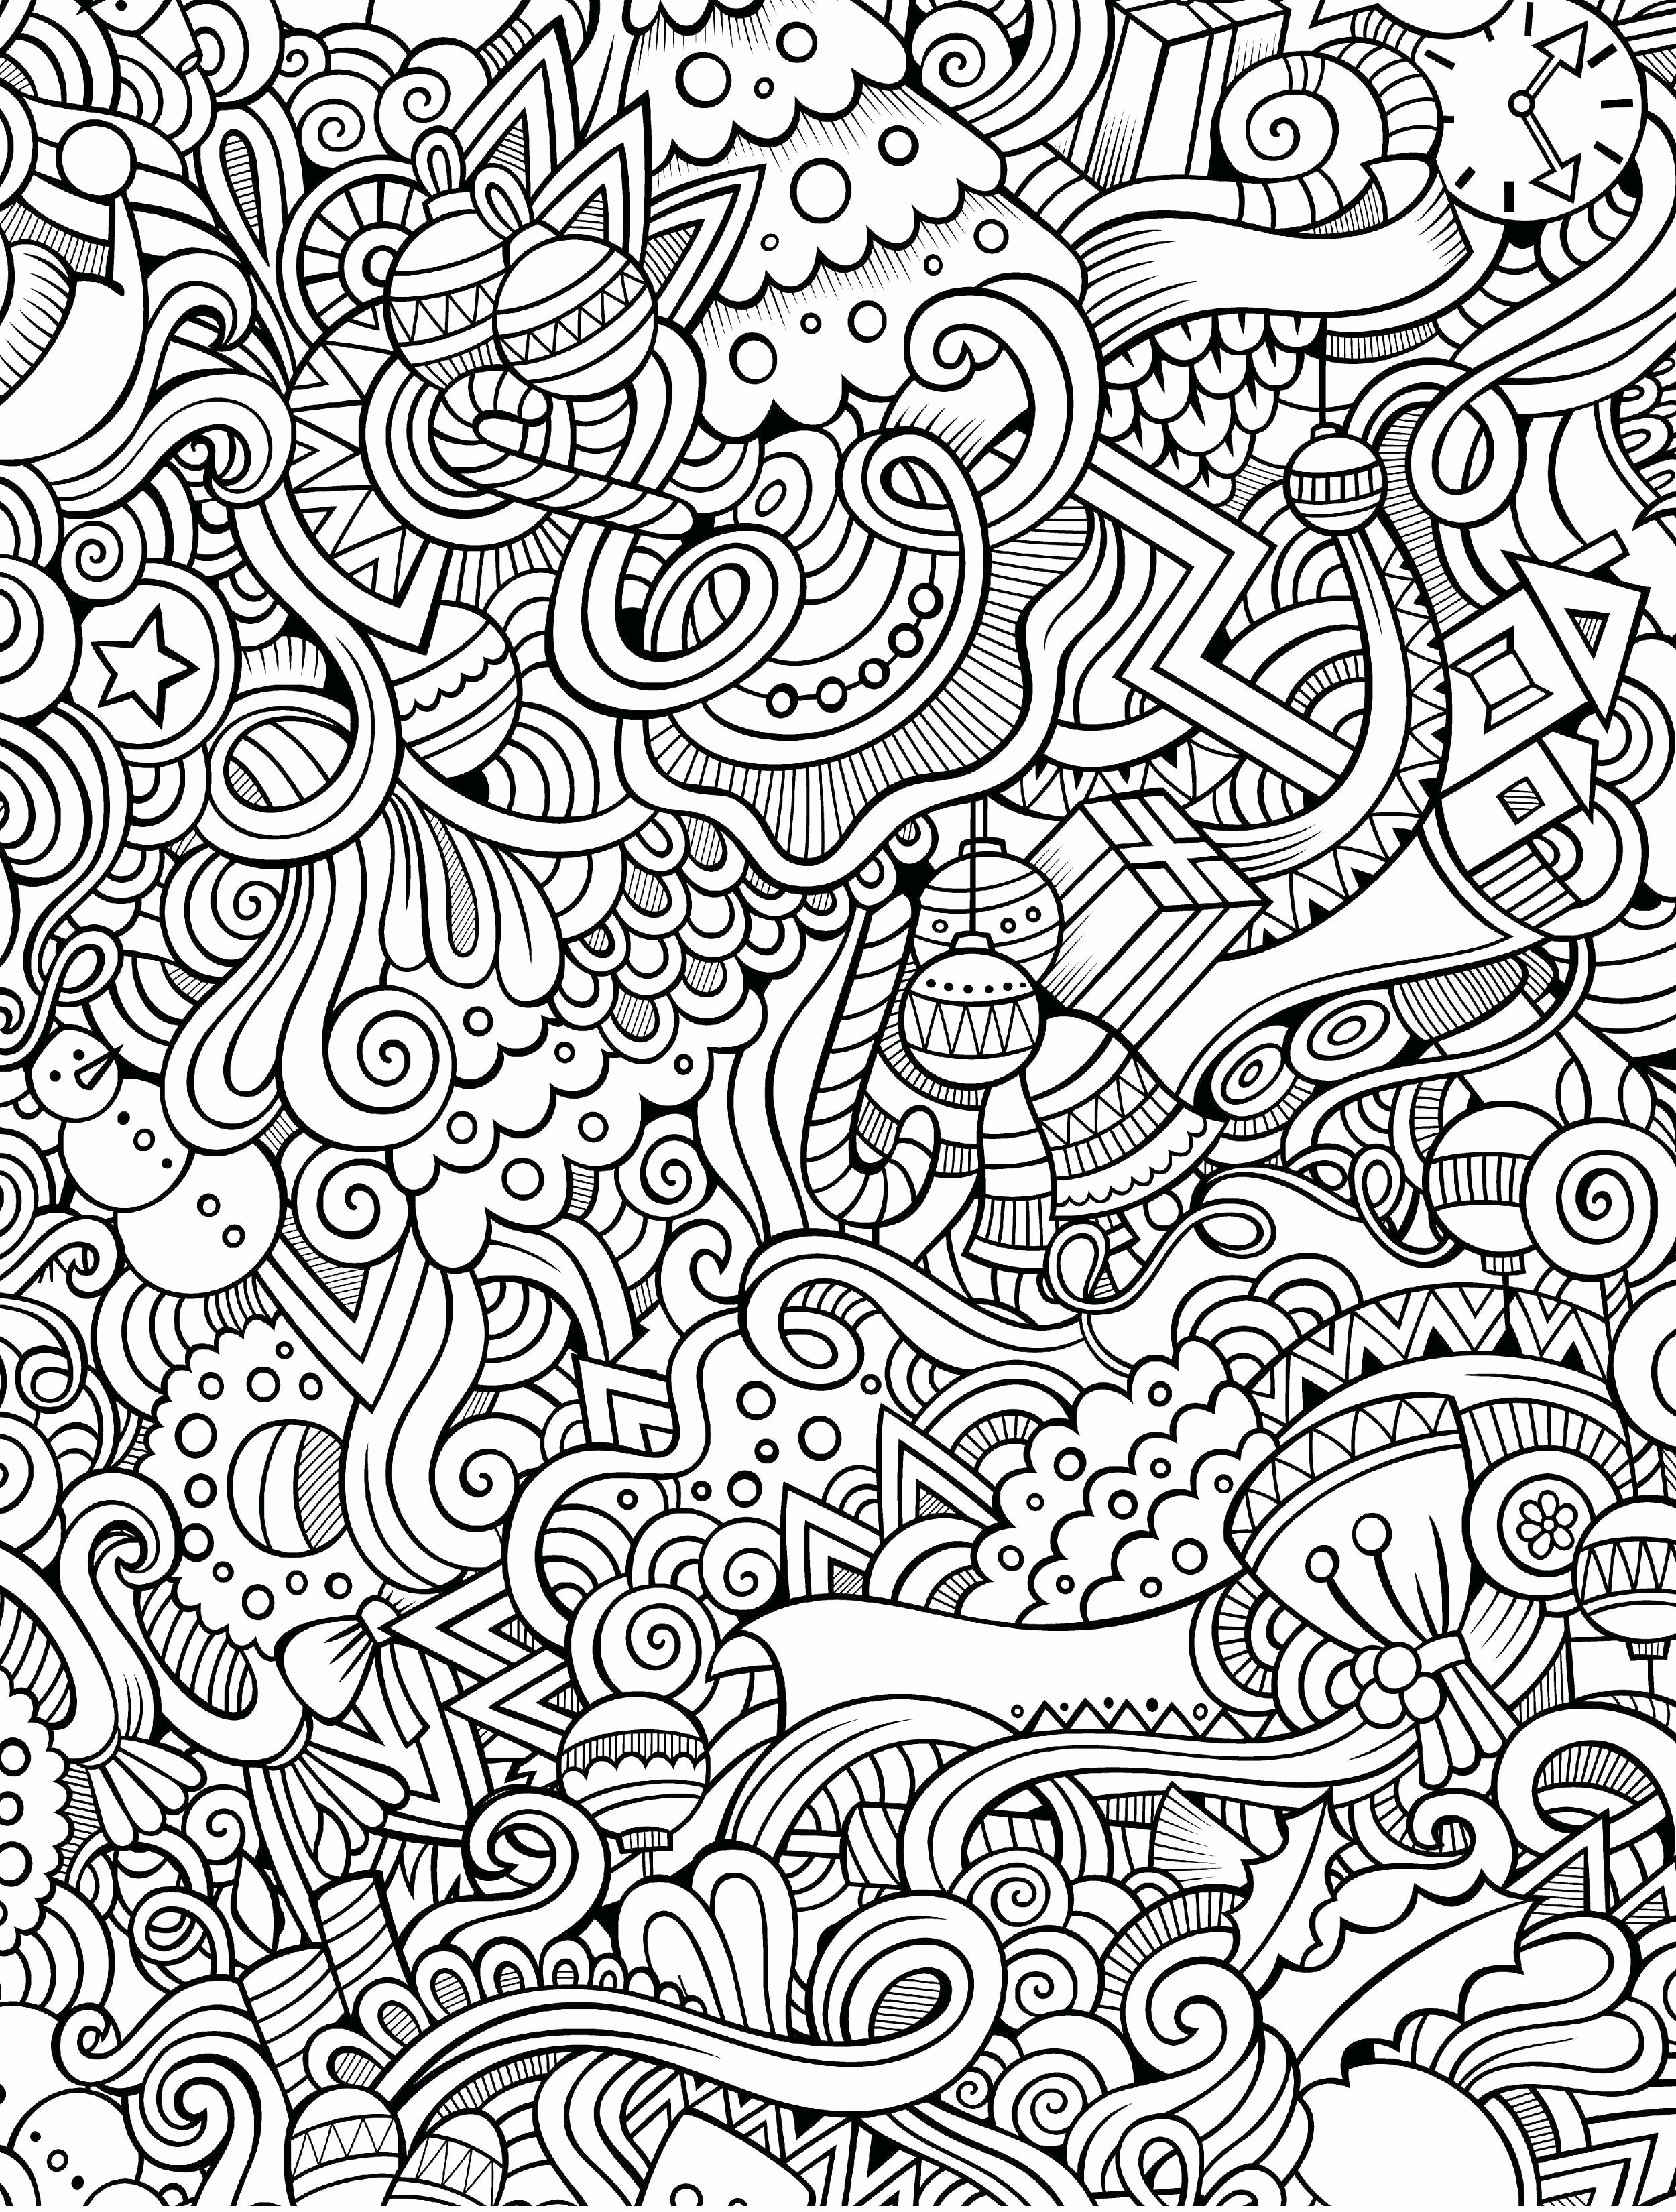 Difficult Christmas Coloring Pages For Adults With Hard Sheets New